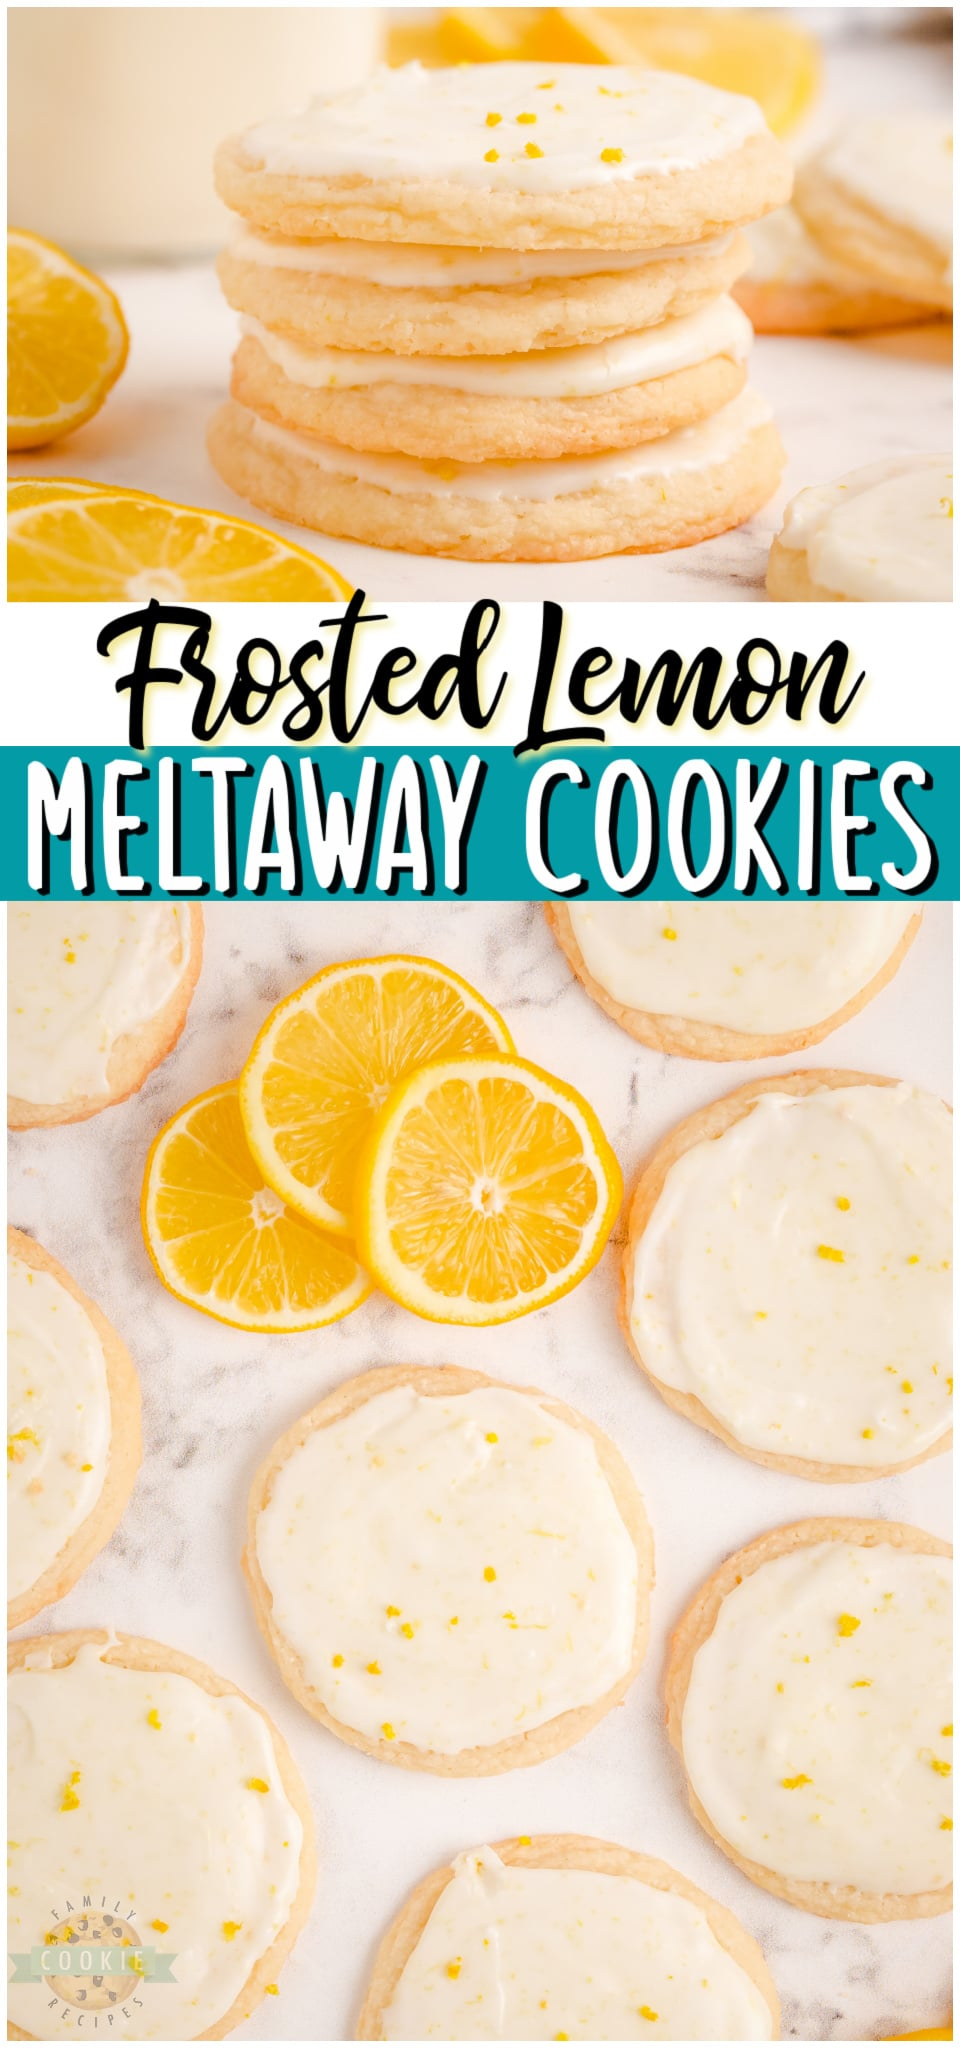 Lemon Meltaways made with simple ingredients like butter, flour, lemon zest & cornstarch. Soft, tender meltaway cookies topped with a lovely fresh lemon glaze!